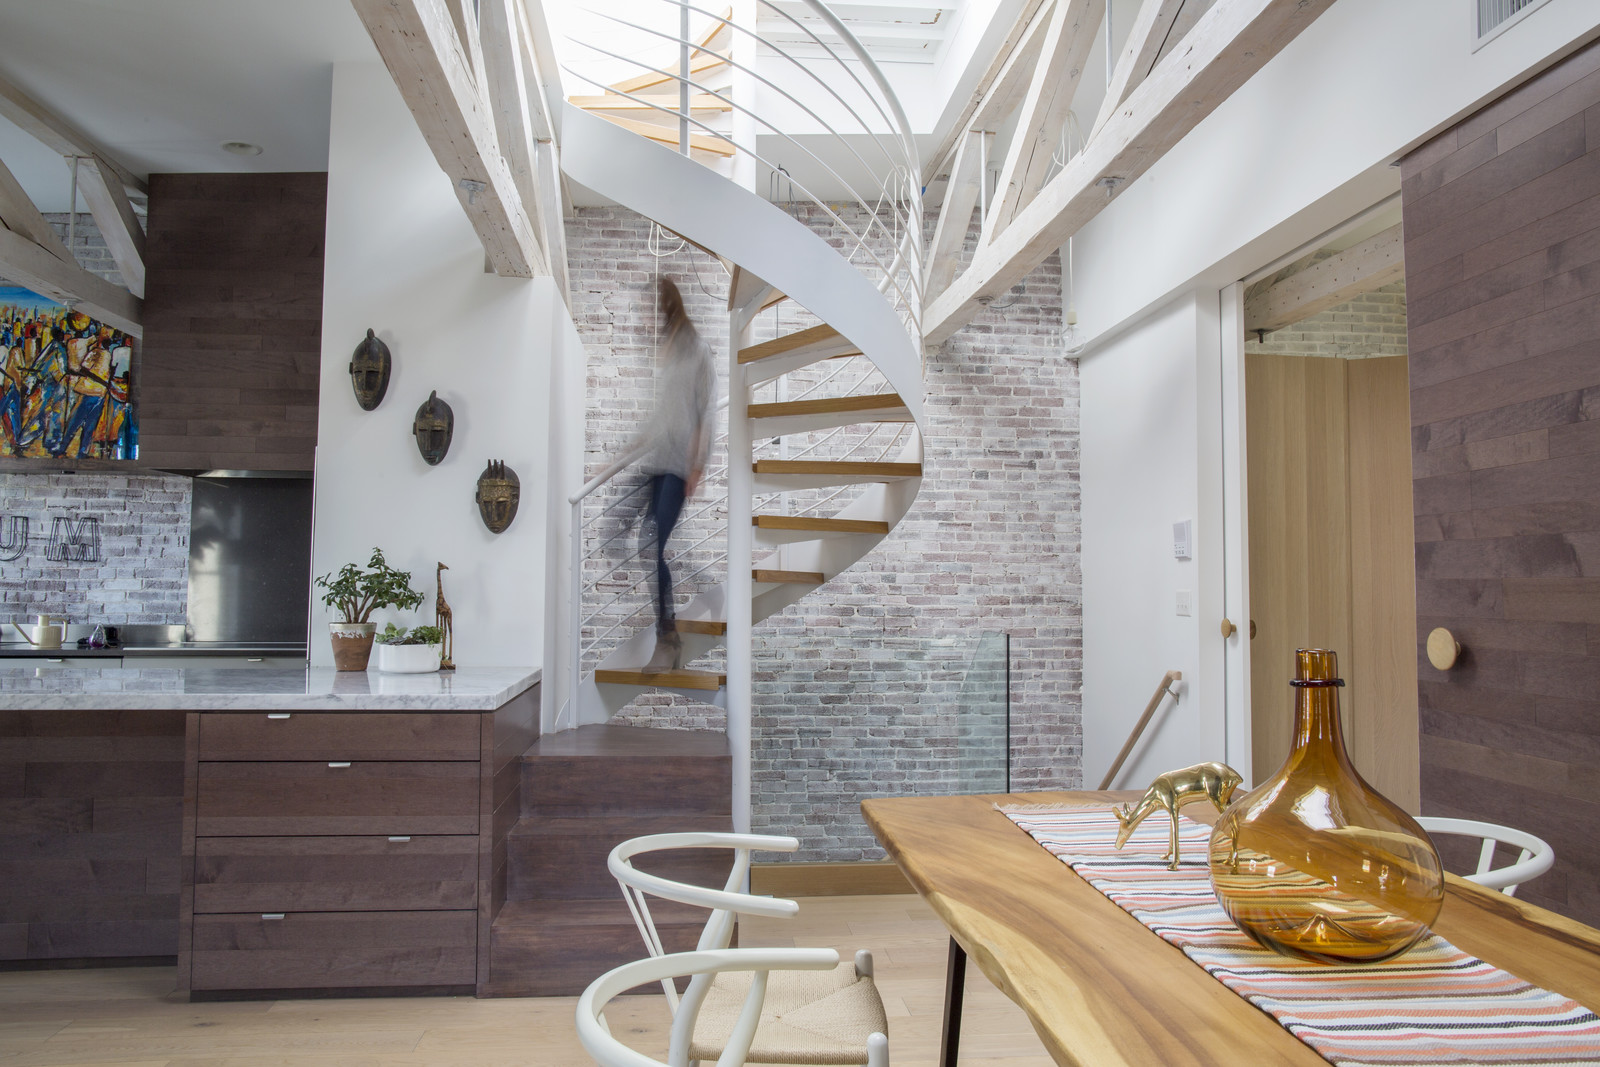 This beautiful space renovated by the owner, Alan Ricks, meshes clean, modern lines with craft details and punctuates it all with incredible art from around the world that the family collected during their travels.  If you love spaces with a global eclectic look, this is definitely a tour you'll want to walk through.   Source:  Dwell Magazine Online